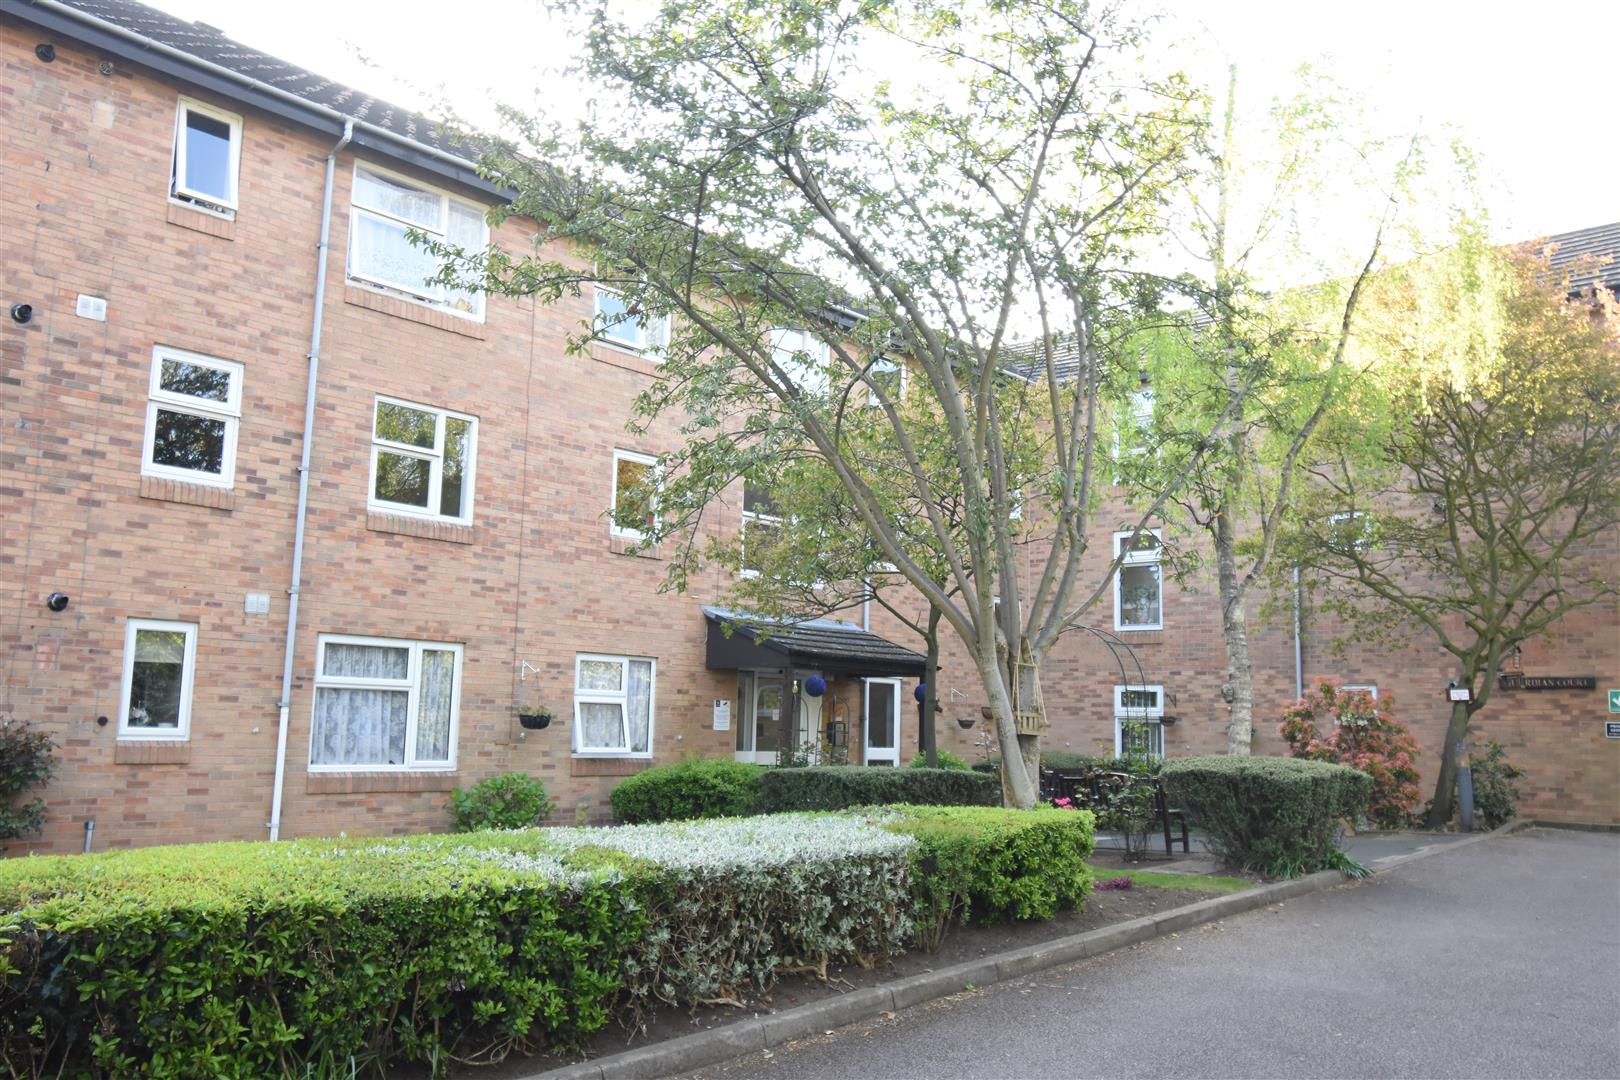 1 bed flat for sale in Moat Lane, Yardley, Birmingham 1